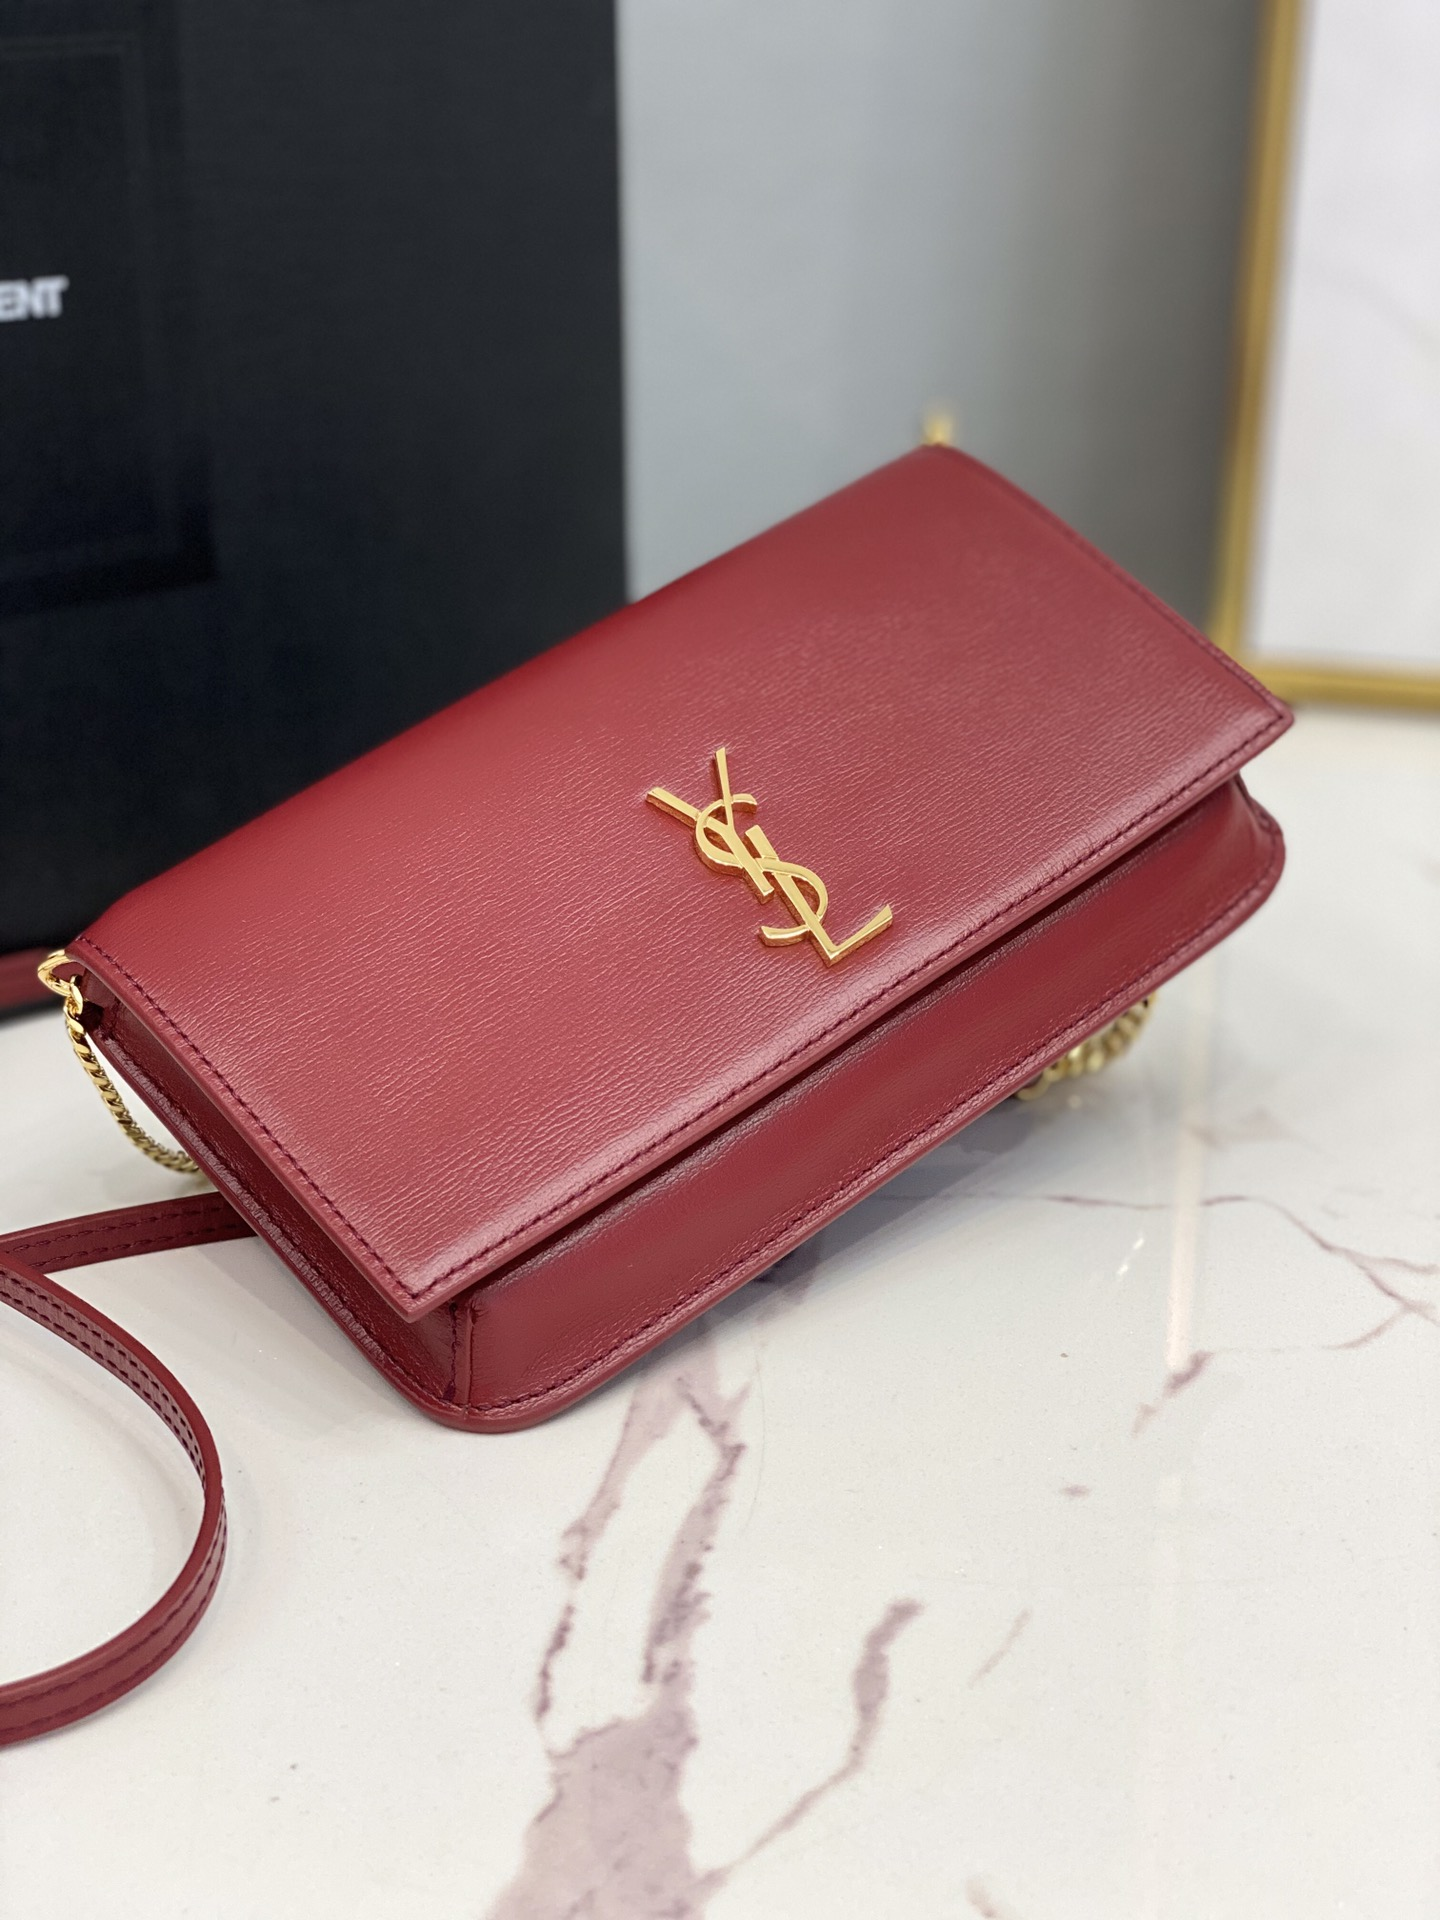 2020 cheap Saint Laurent monogram phone holder with strap in red smooth leather